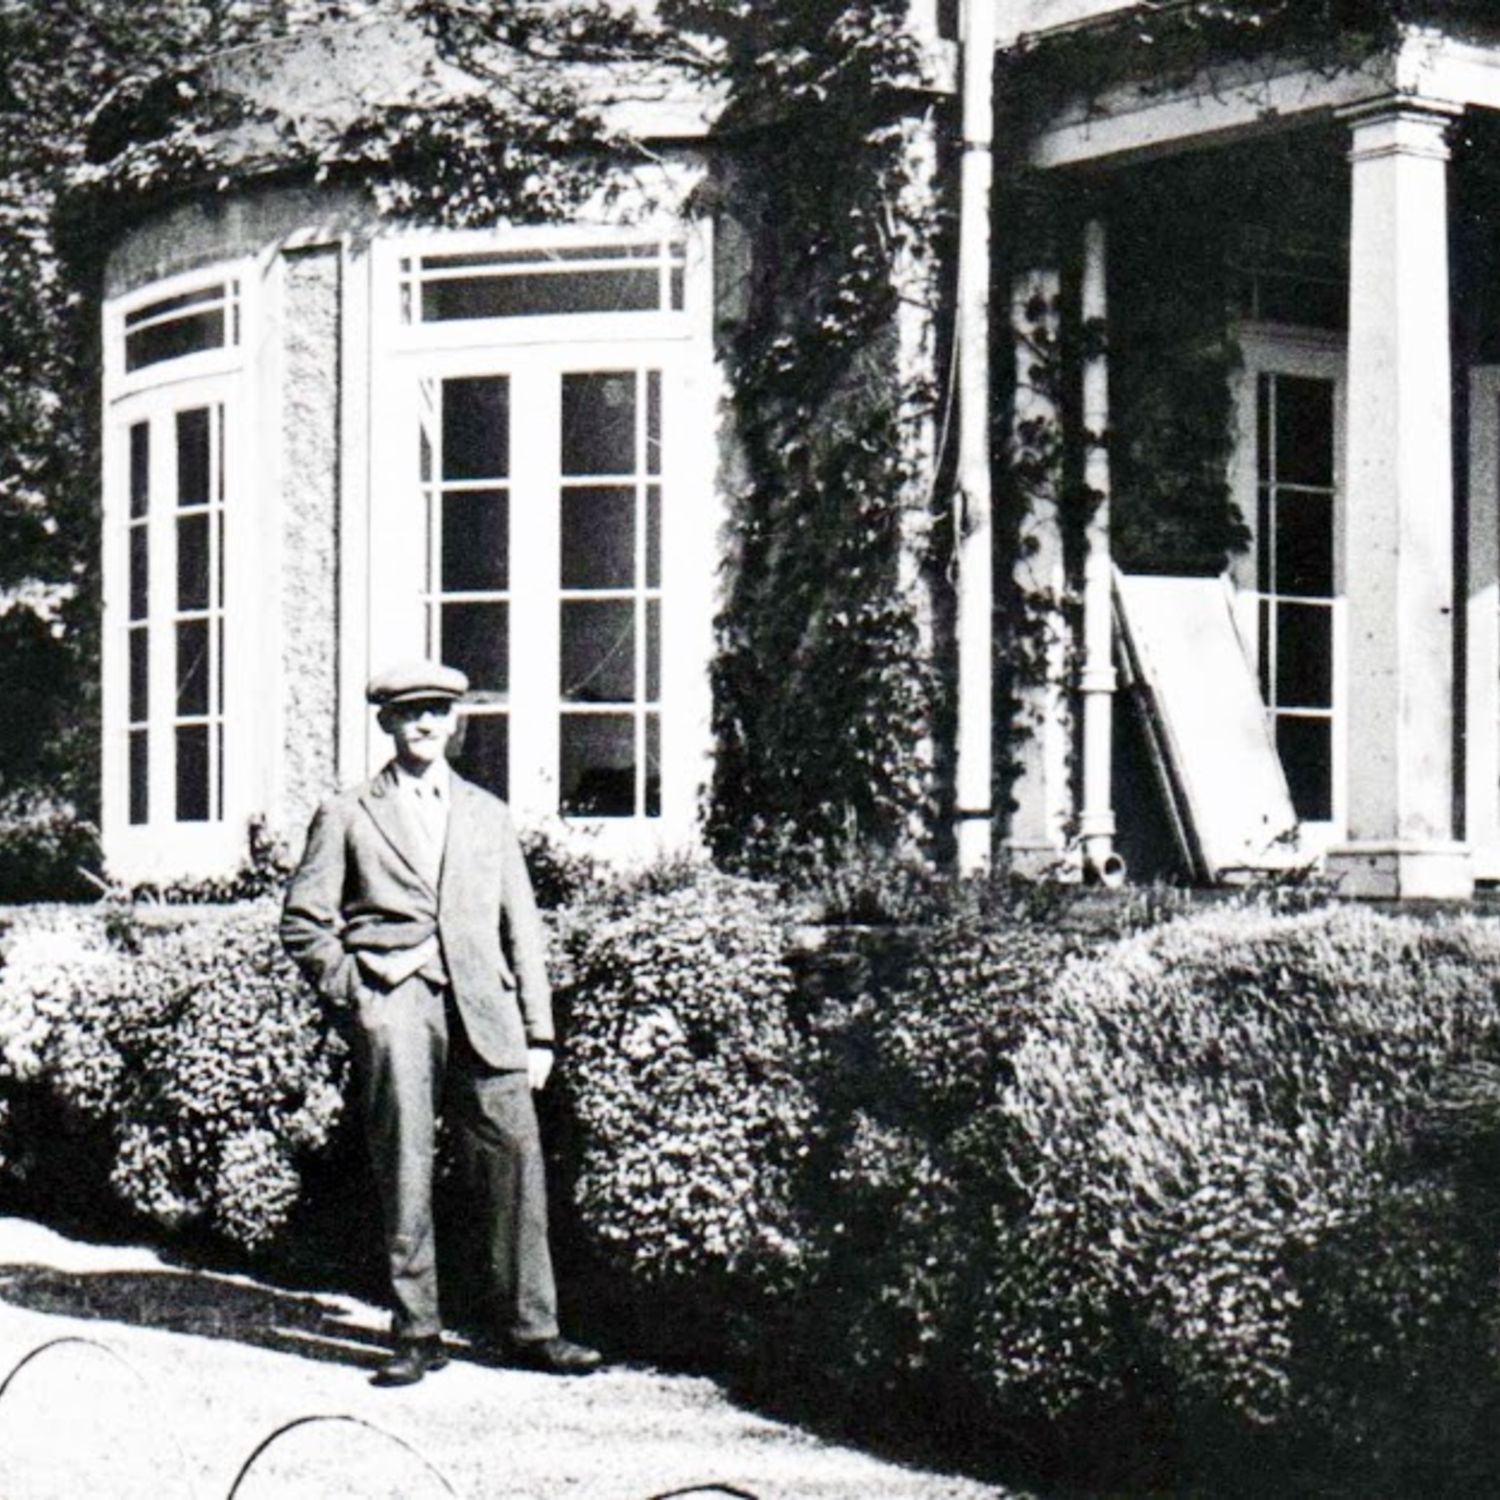 Mr Grace was Caddie Master from 1910 to the 1930's photographed outside the new dining room built in